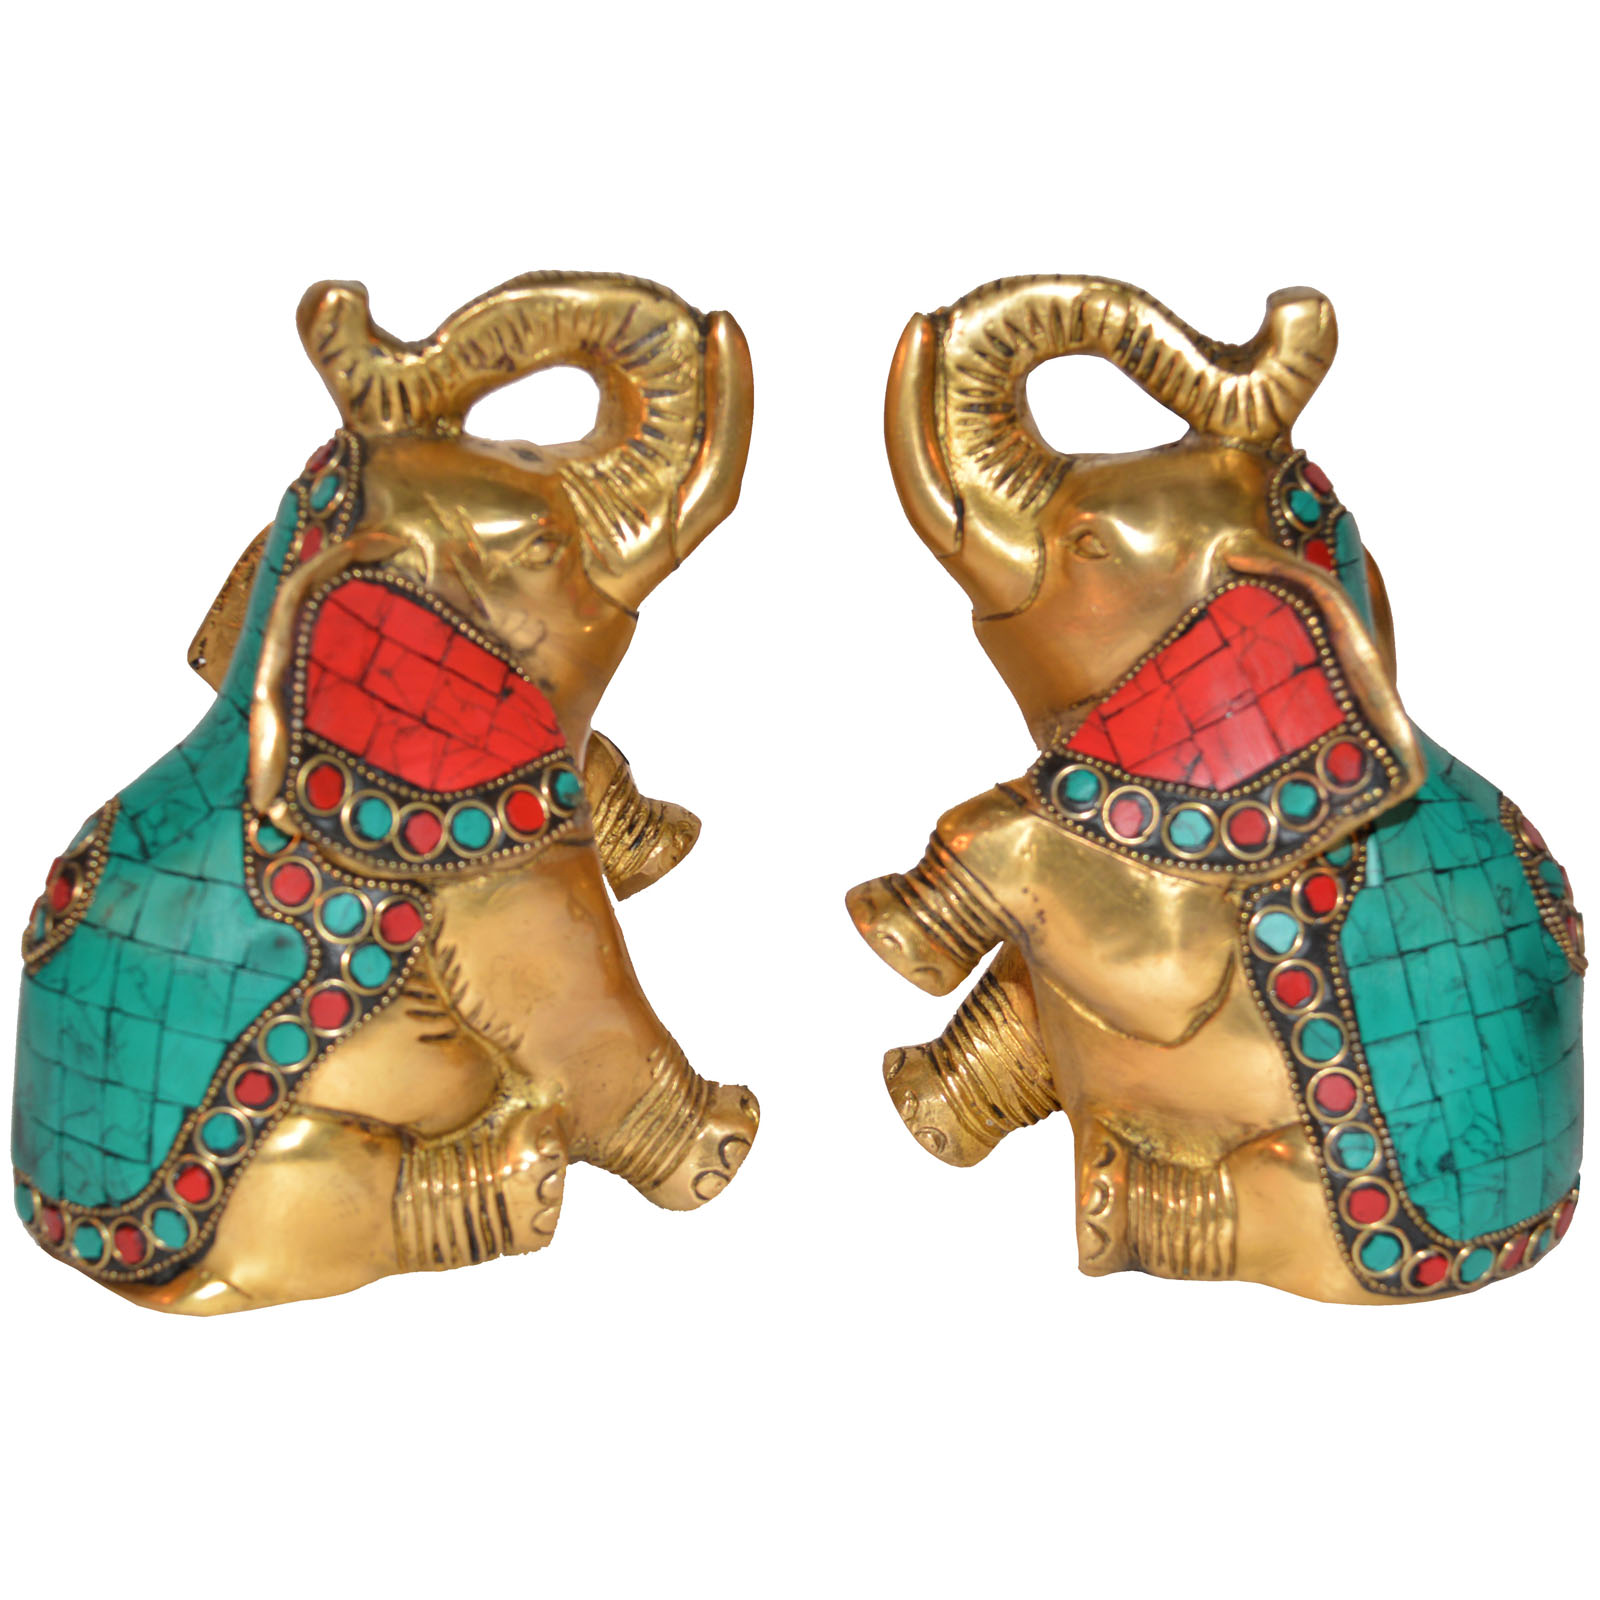 Customized Sculpture Brass Metal made Elephant Statue Pair Turquoise work by Aakrati